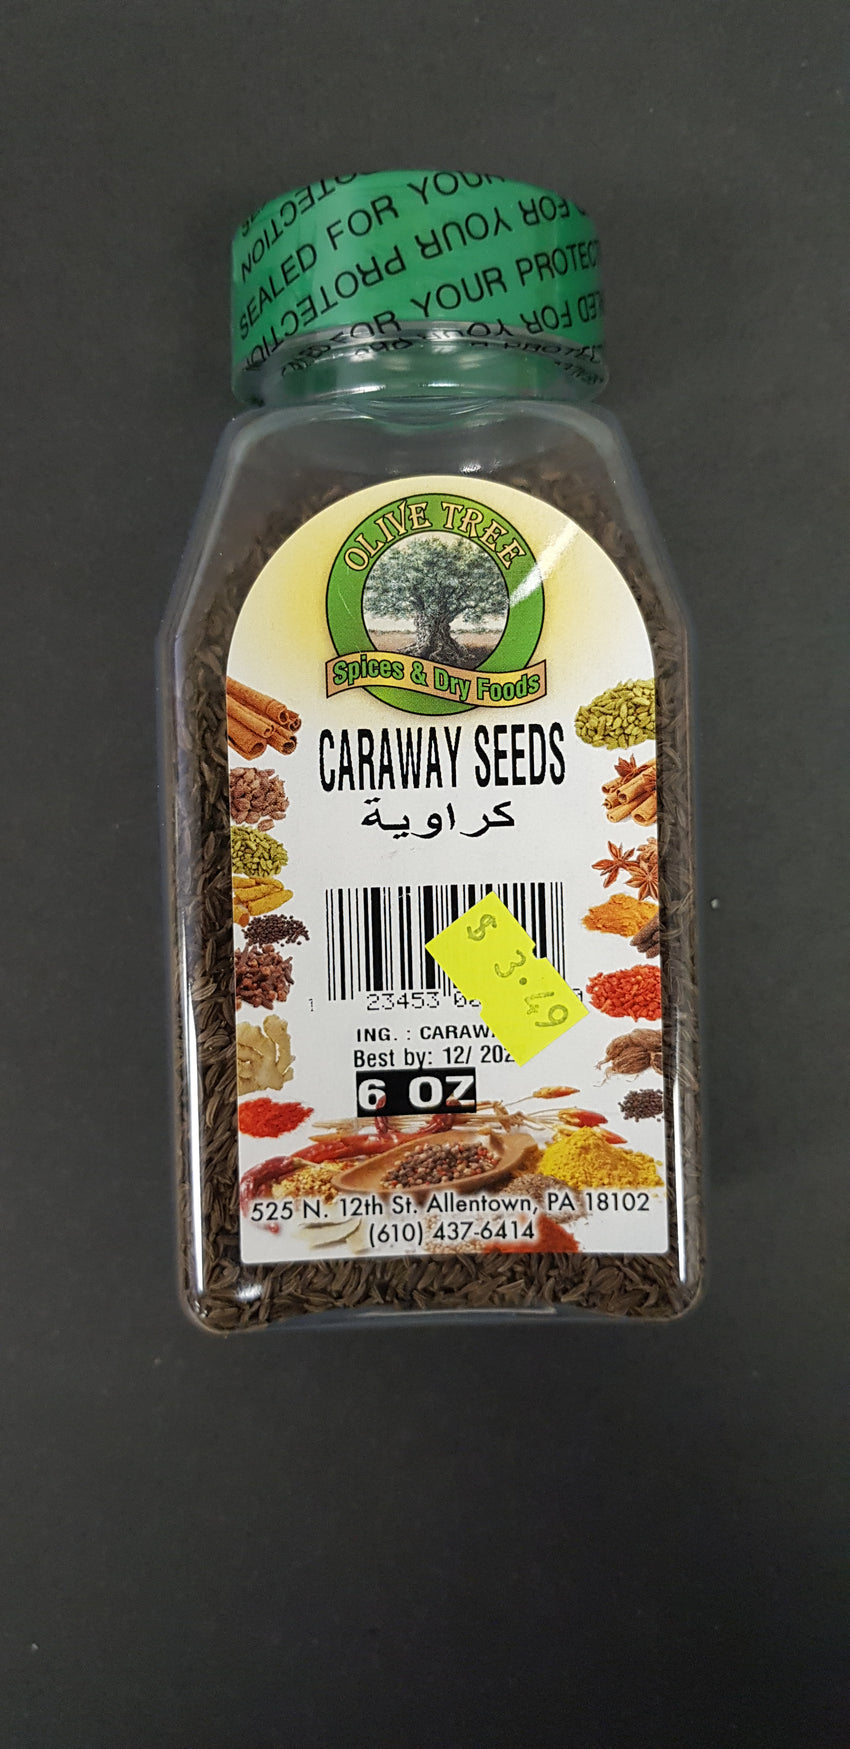 Olive tree caraway seeds